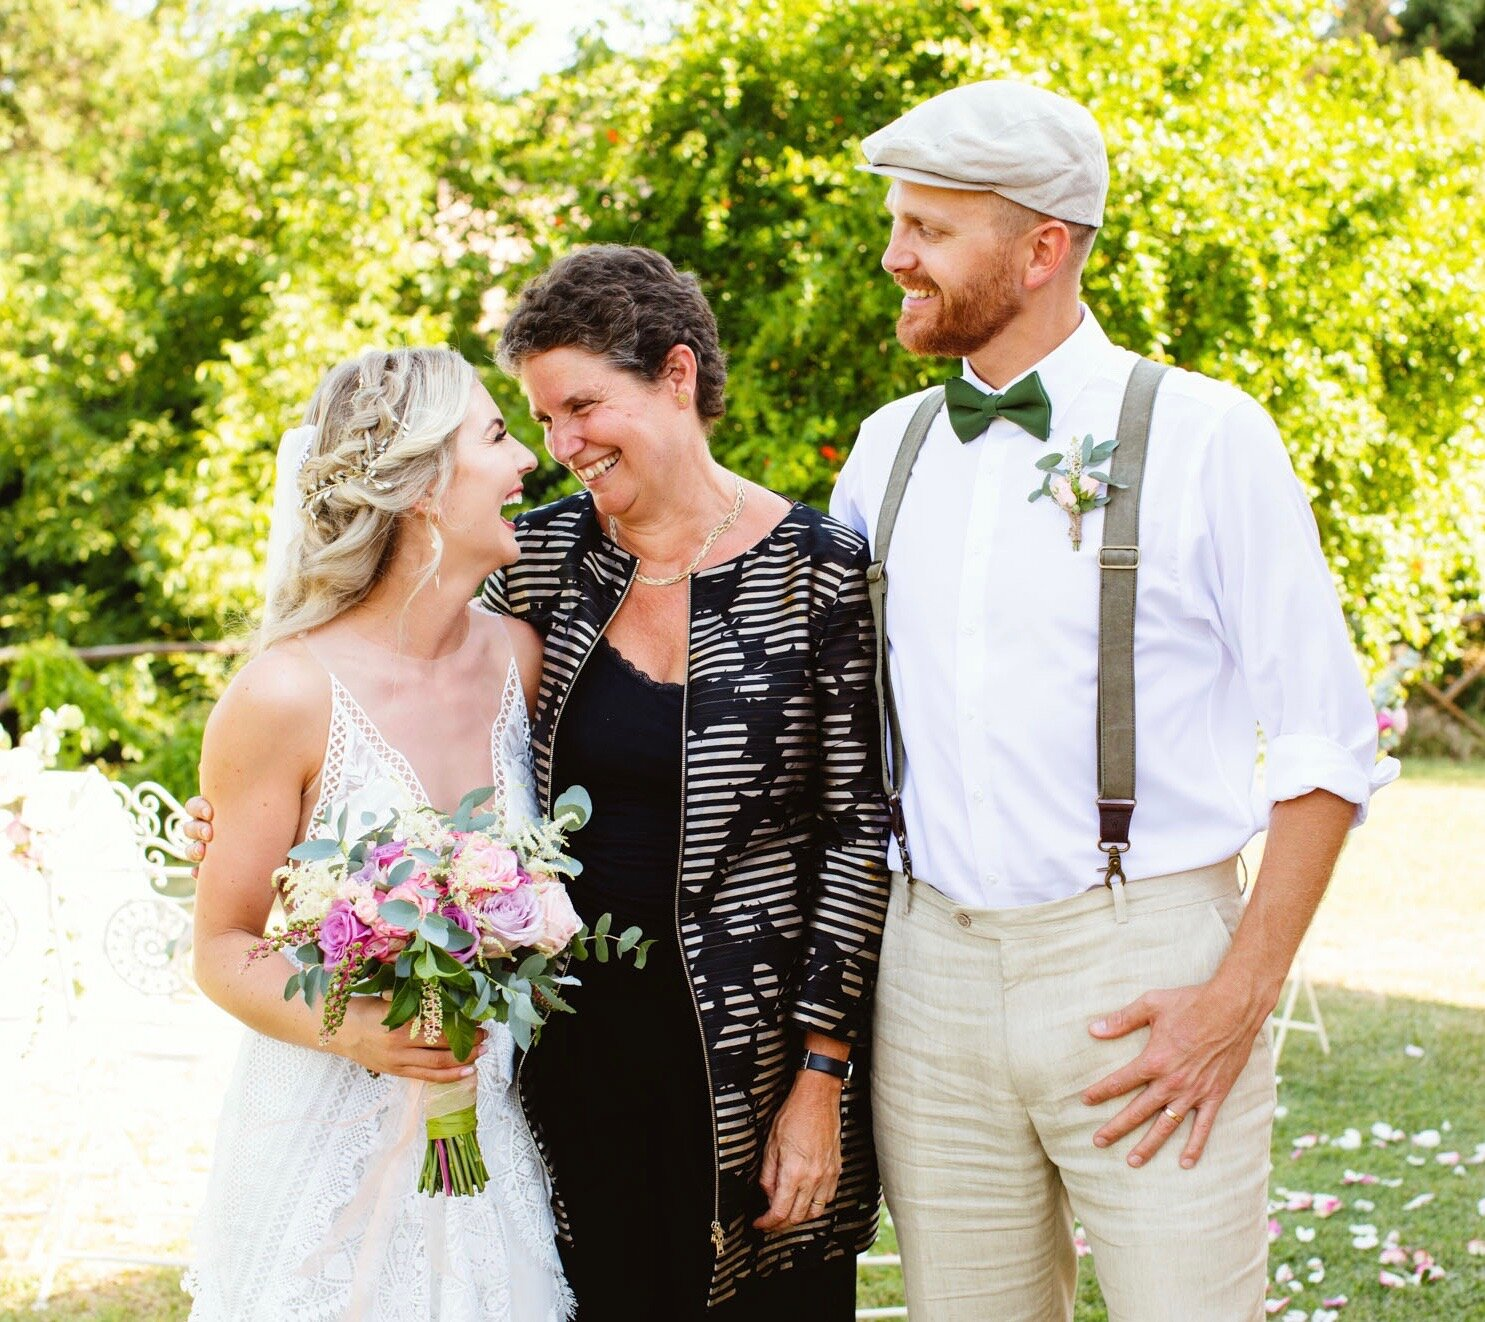 Aim for good chemistry - Delivering a personalised, heartfelt ceremony that feels authentic and meaningful requires a high level of compatibility between you and your celebrant. You should take your time to find who you feel comfortable with and who has the right personality to match yours.